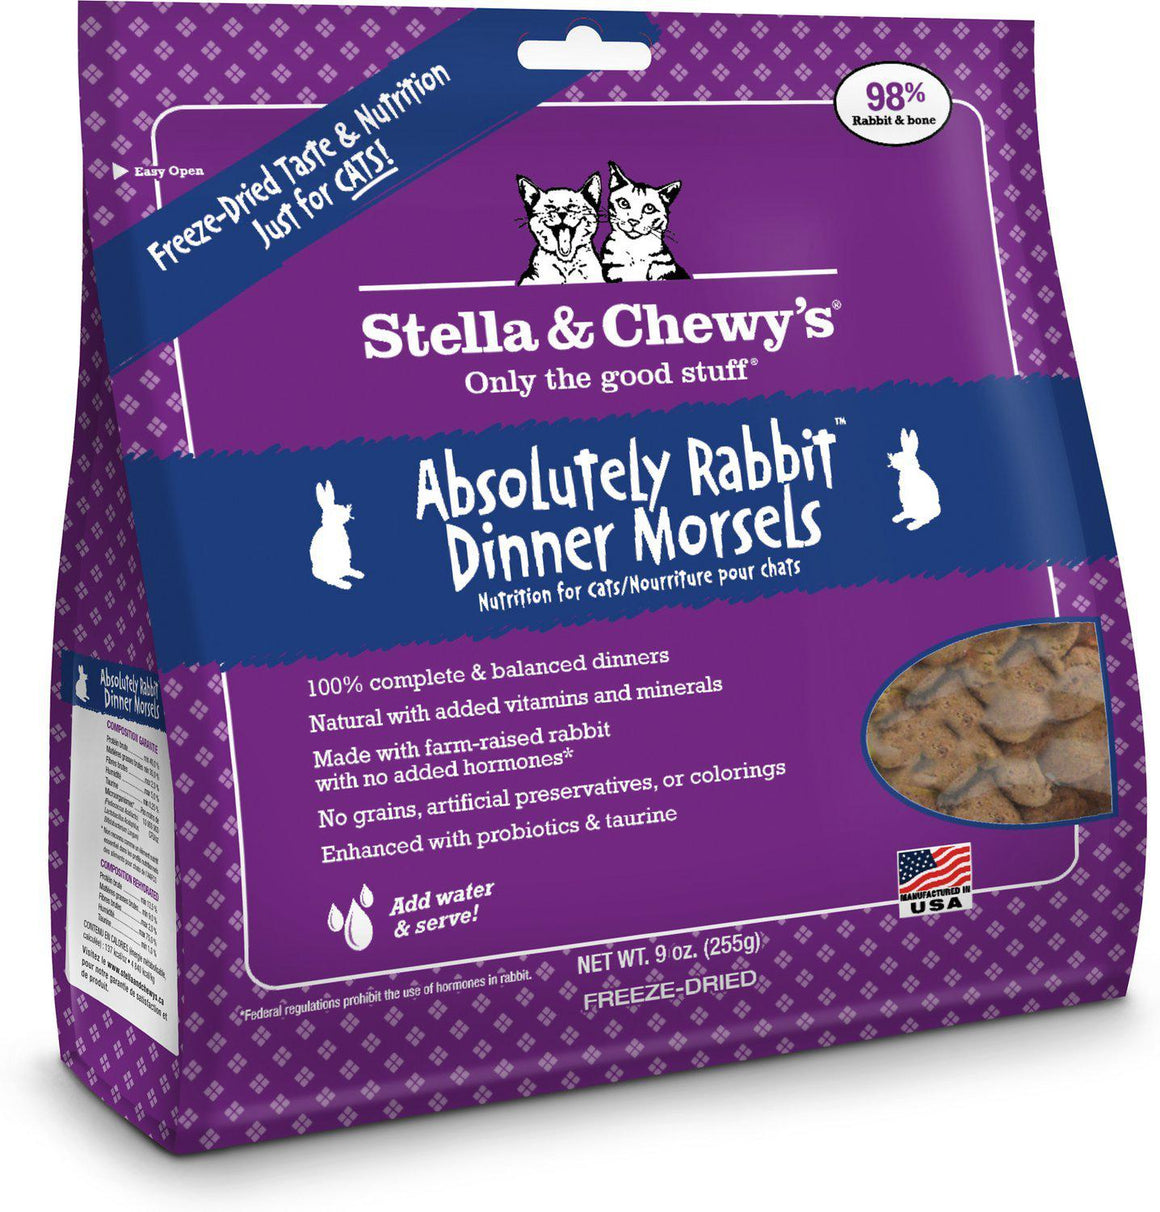 Stella & Chewy's Absolutely Rabbit Grain-Free Freeze-Dried Raw Dinner Morsels Cat Food-Le Pup Pet Supplies and Grooming